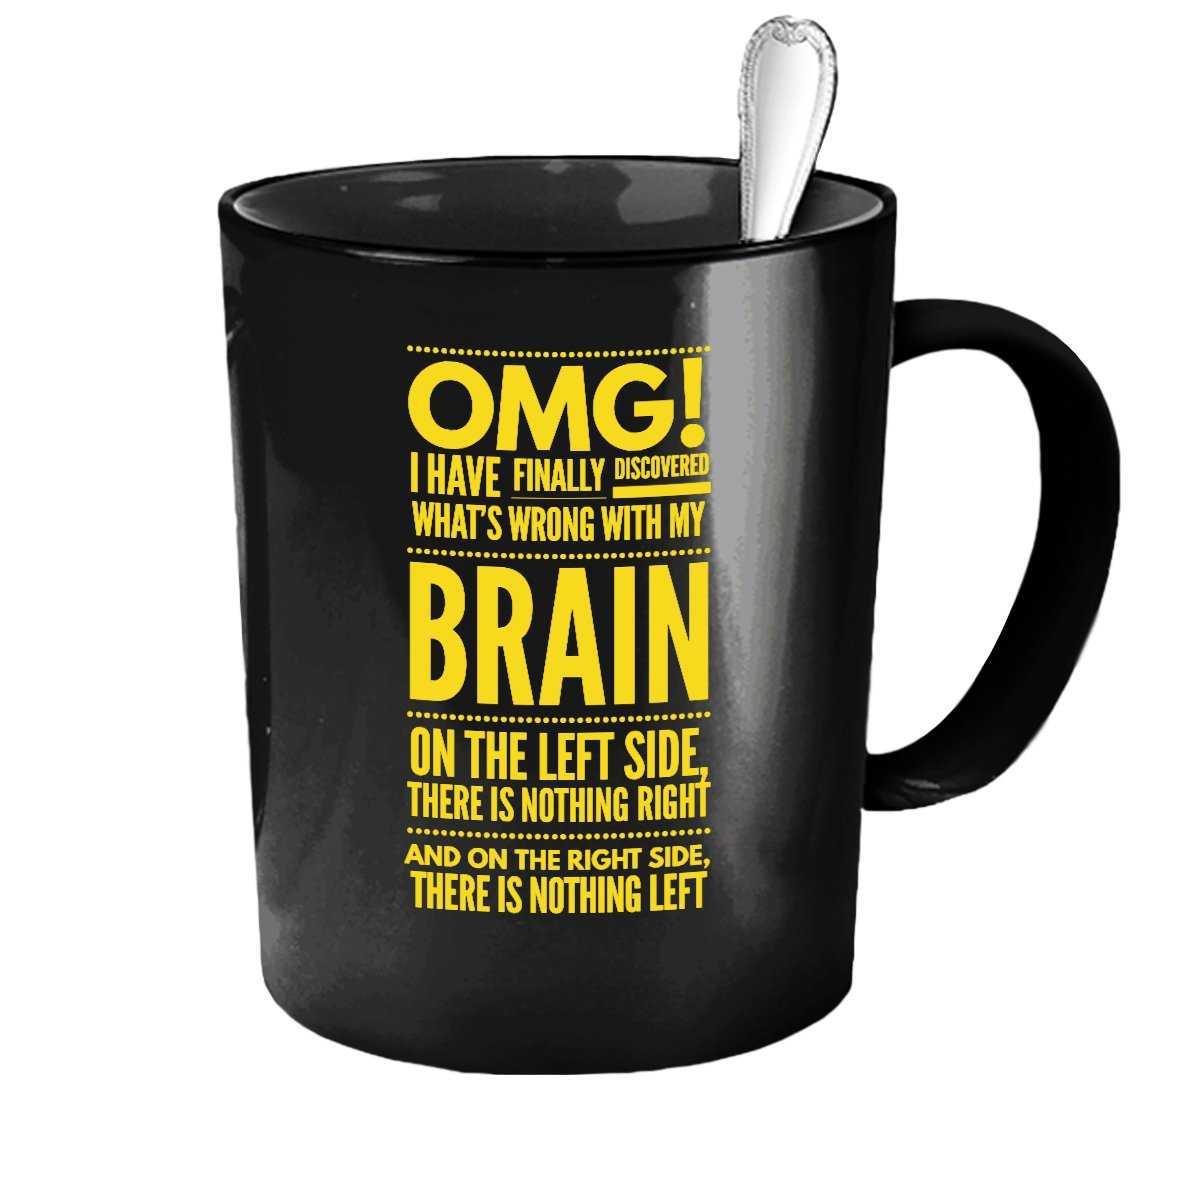 Funny Ceramic Coffee Mug - My Brain - Cute Large Cup (Black) - Best Gift for Men, Women